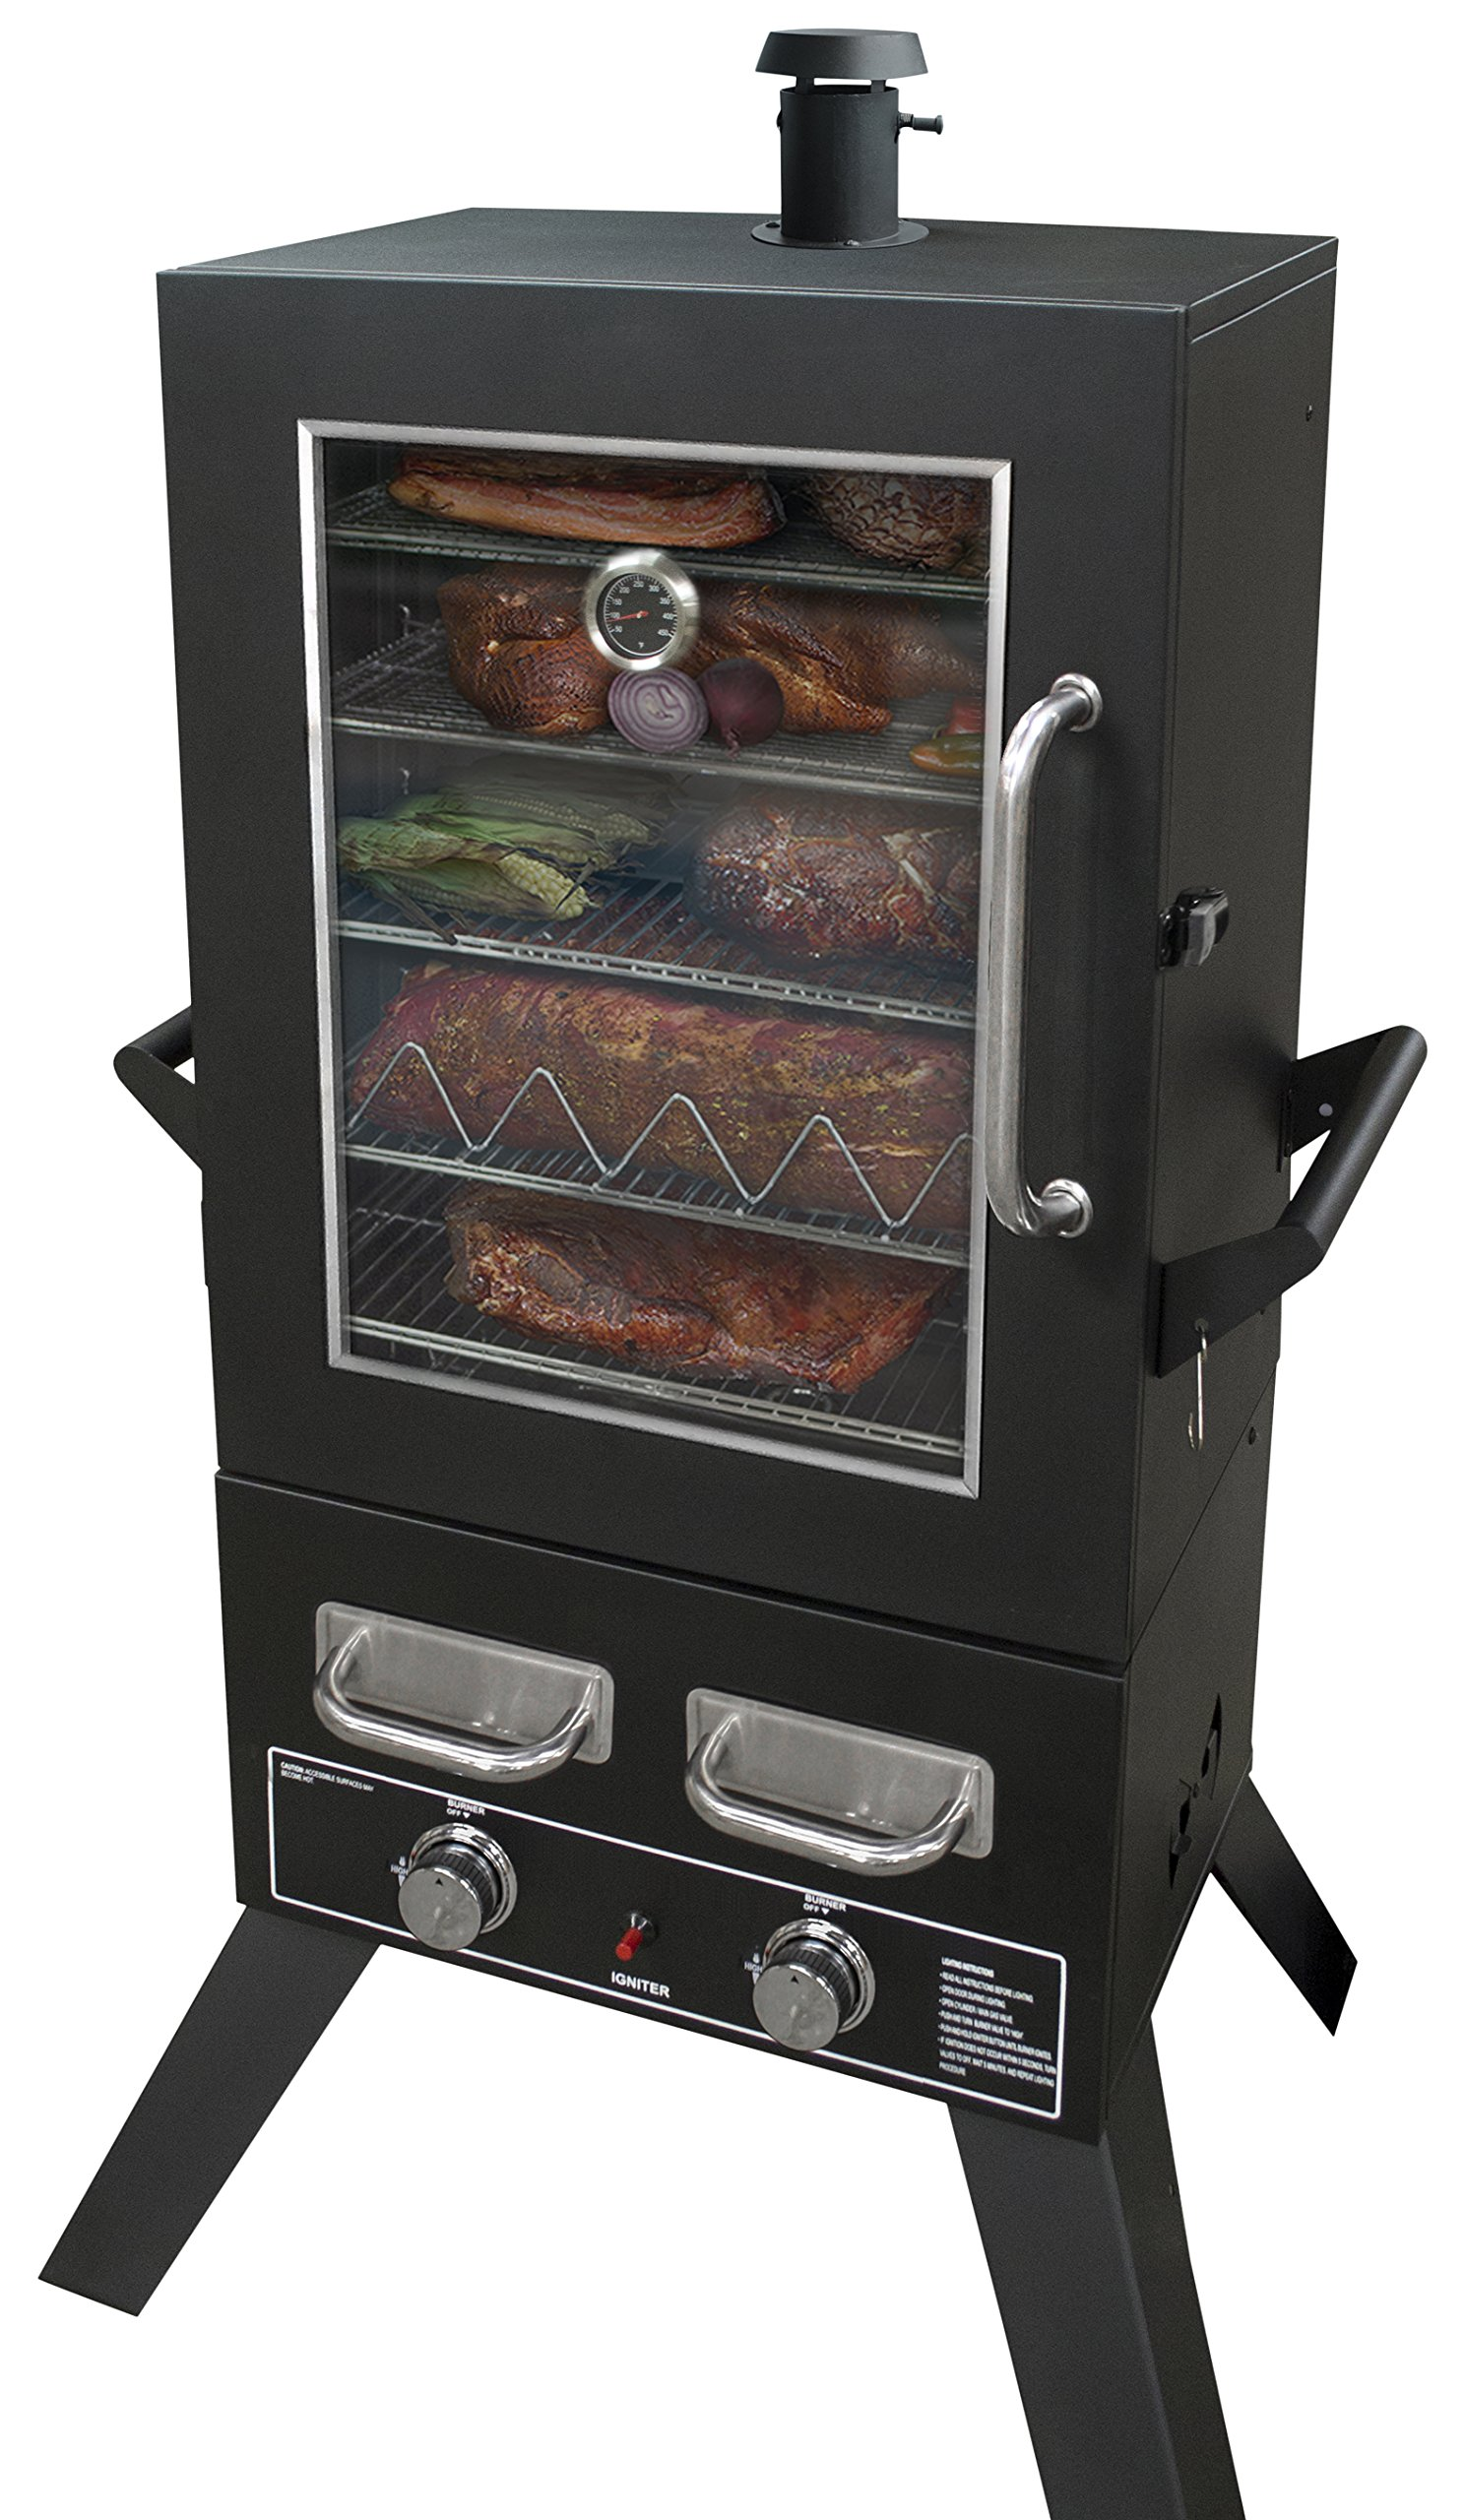 Smoke Hollow PS4415 Pro Series 44'' Propane Smoker, 33'' x 24.5'' x 60'' by Smoke Hollow